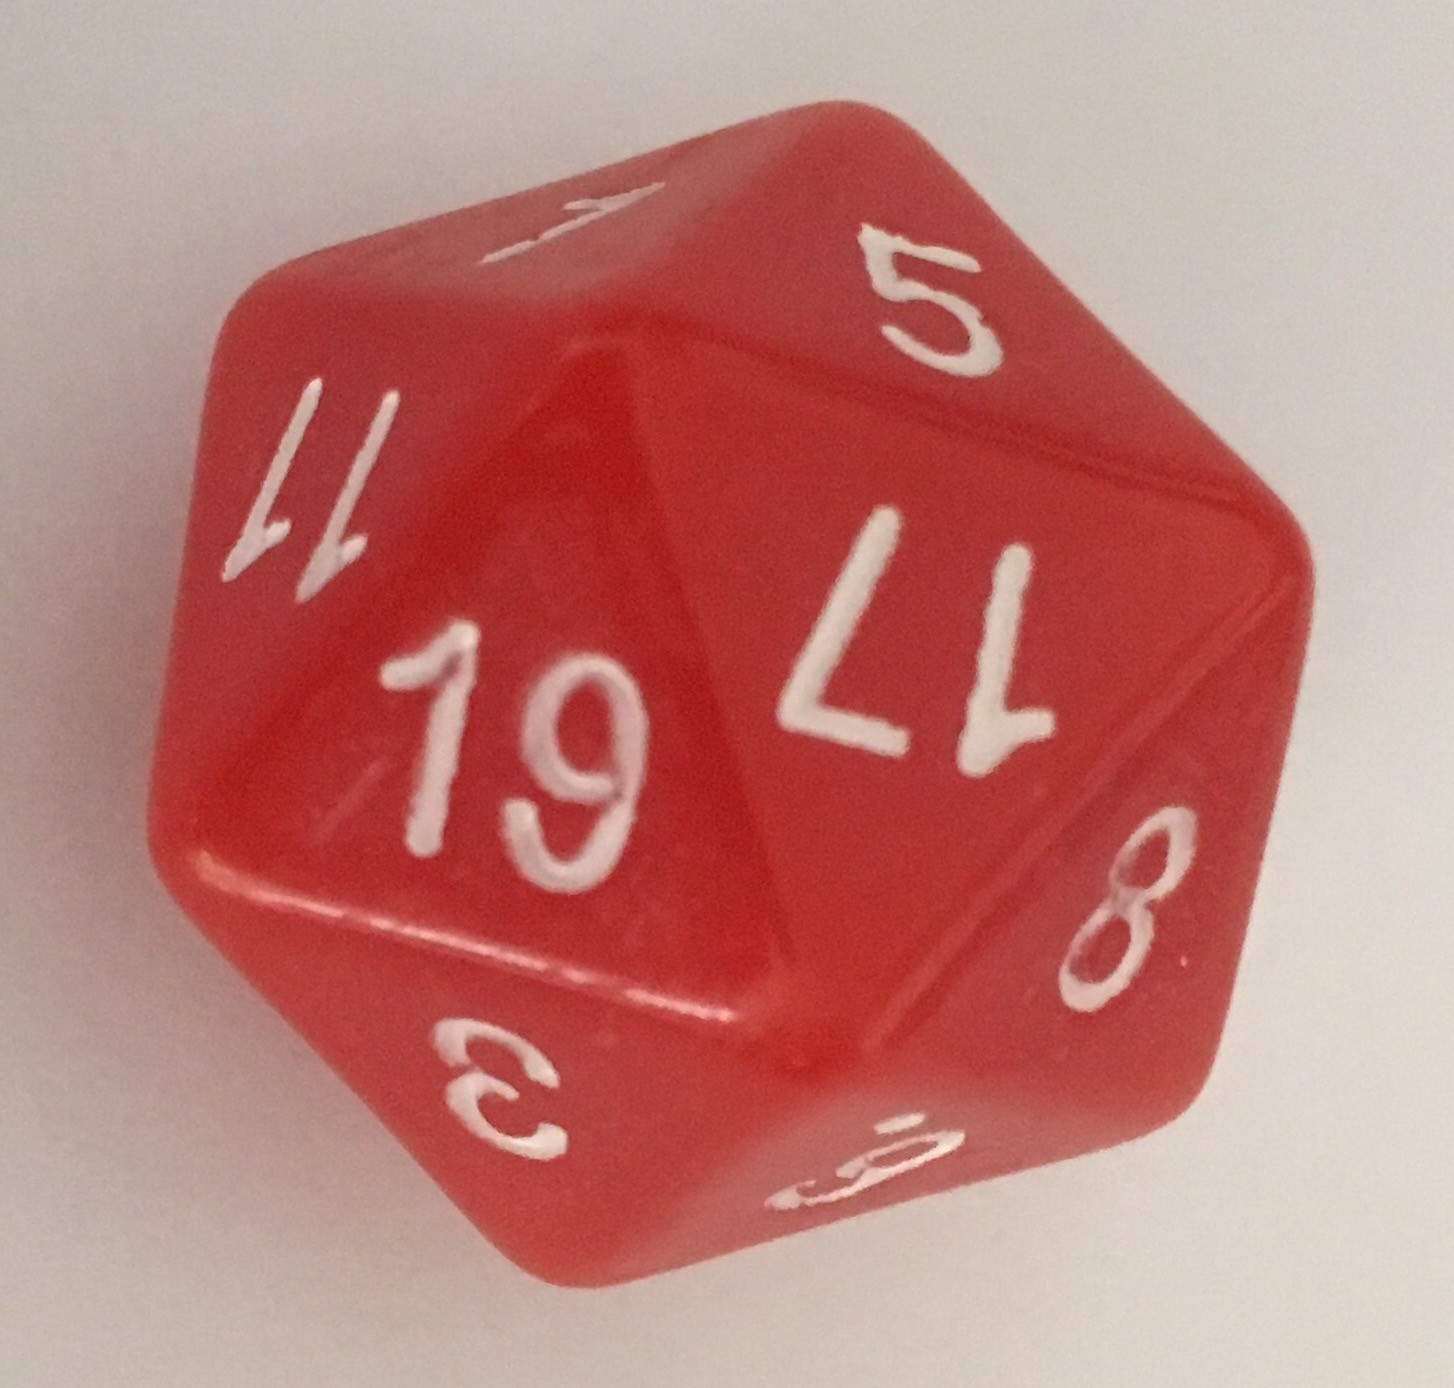 Magic-Numbered Icosahedral Dice (Single Truly Fair D20)